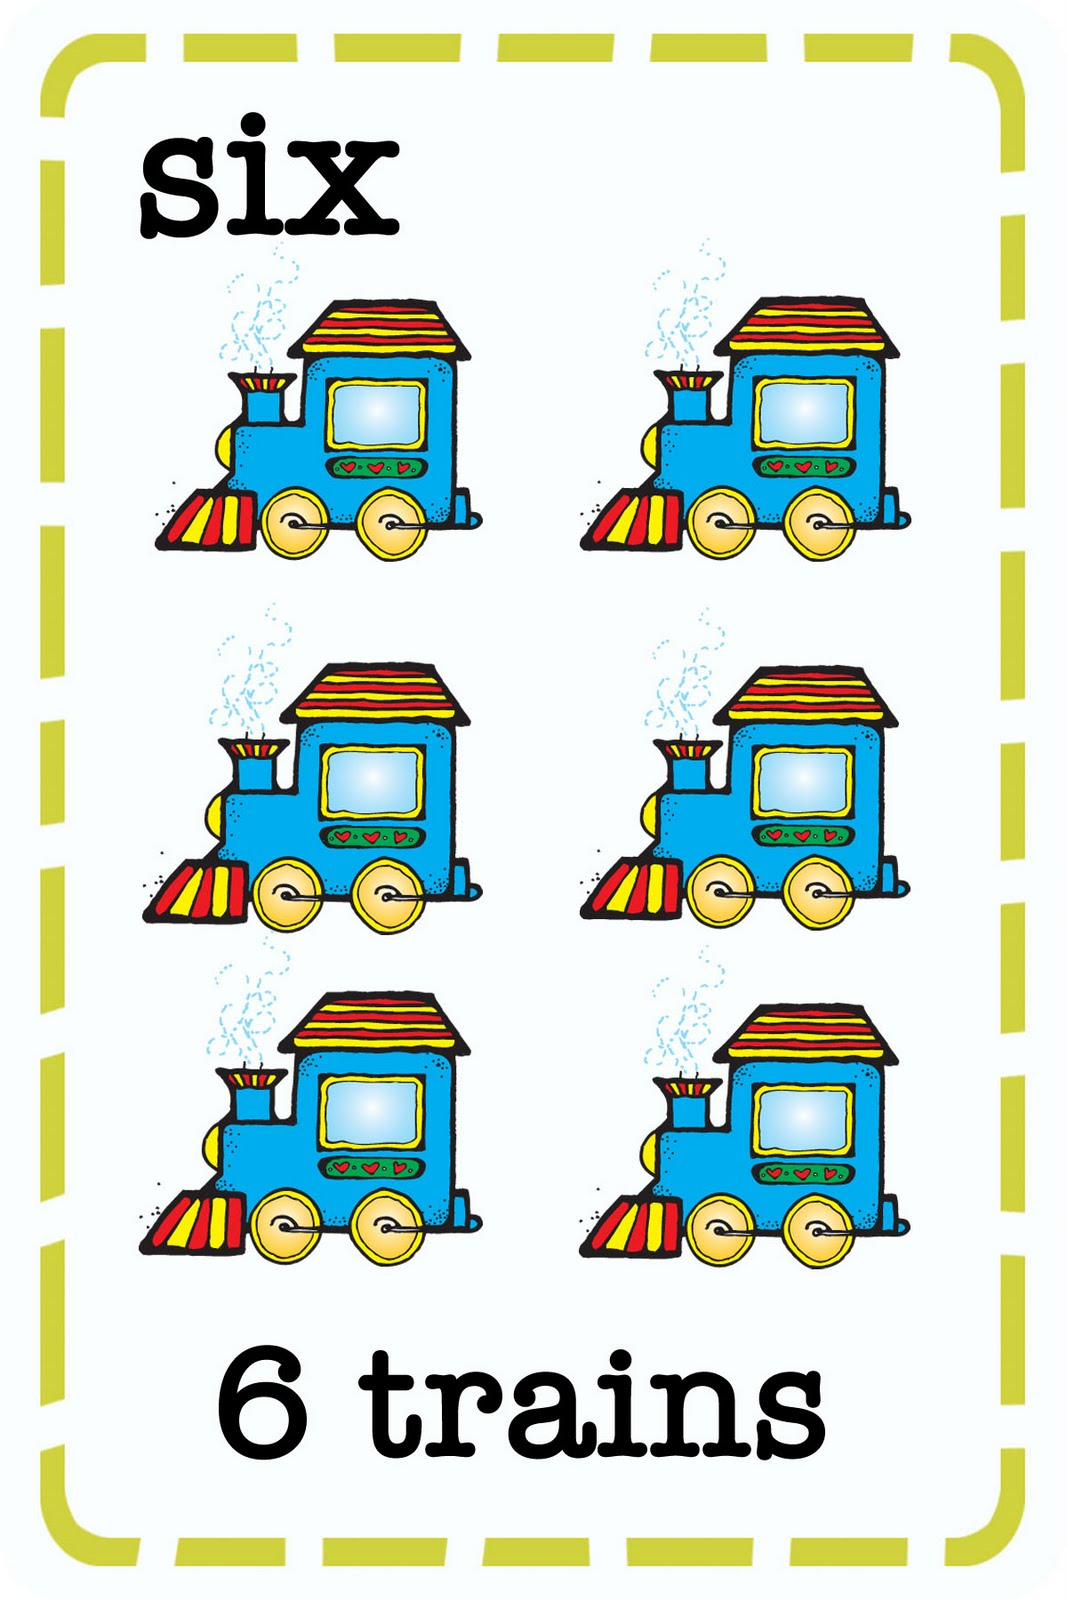 Free Flashcards Cliparts Download Free Clip Art Free